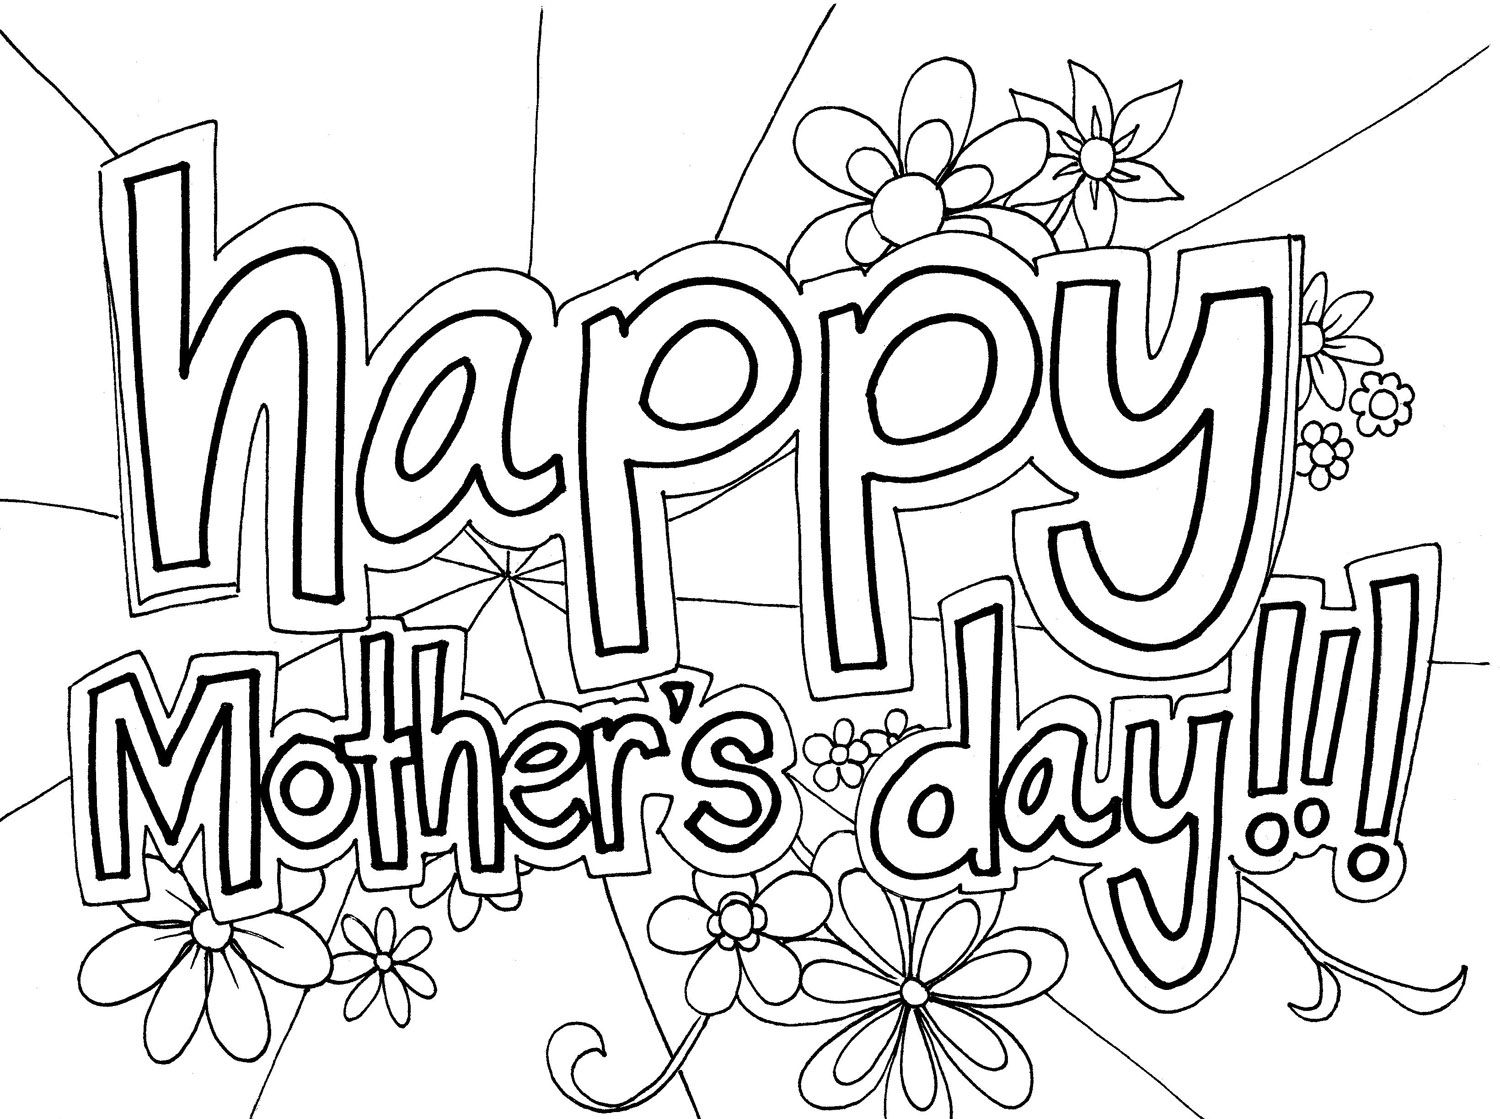 Black and white free clipart mothers day jpg free library Free Mothers Day Clipart Black and White 2019 Download jpg free library